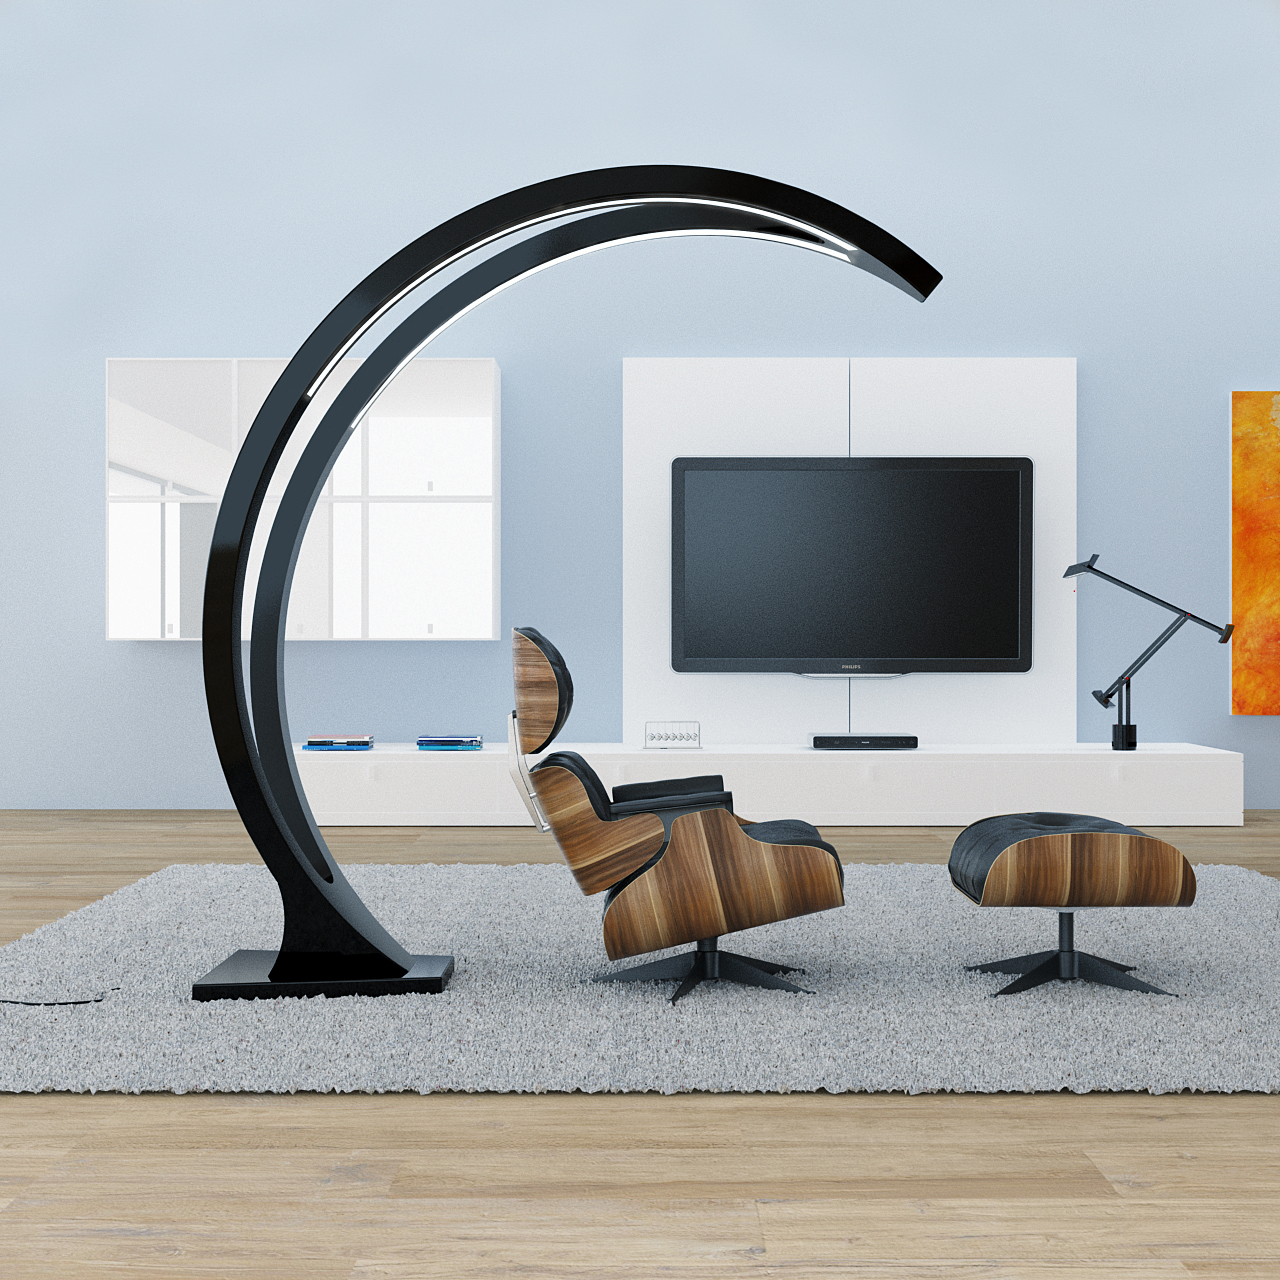 Moon lamp zad zone of absolute designlampade design for Prodotti design